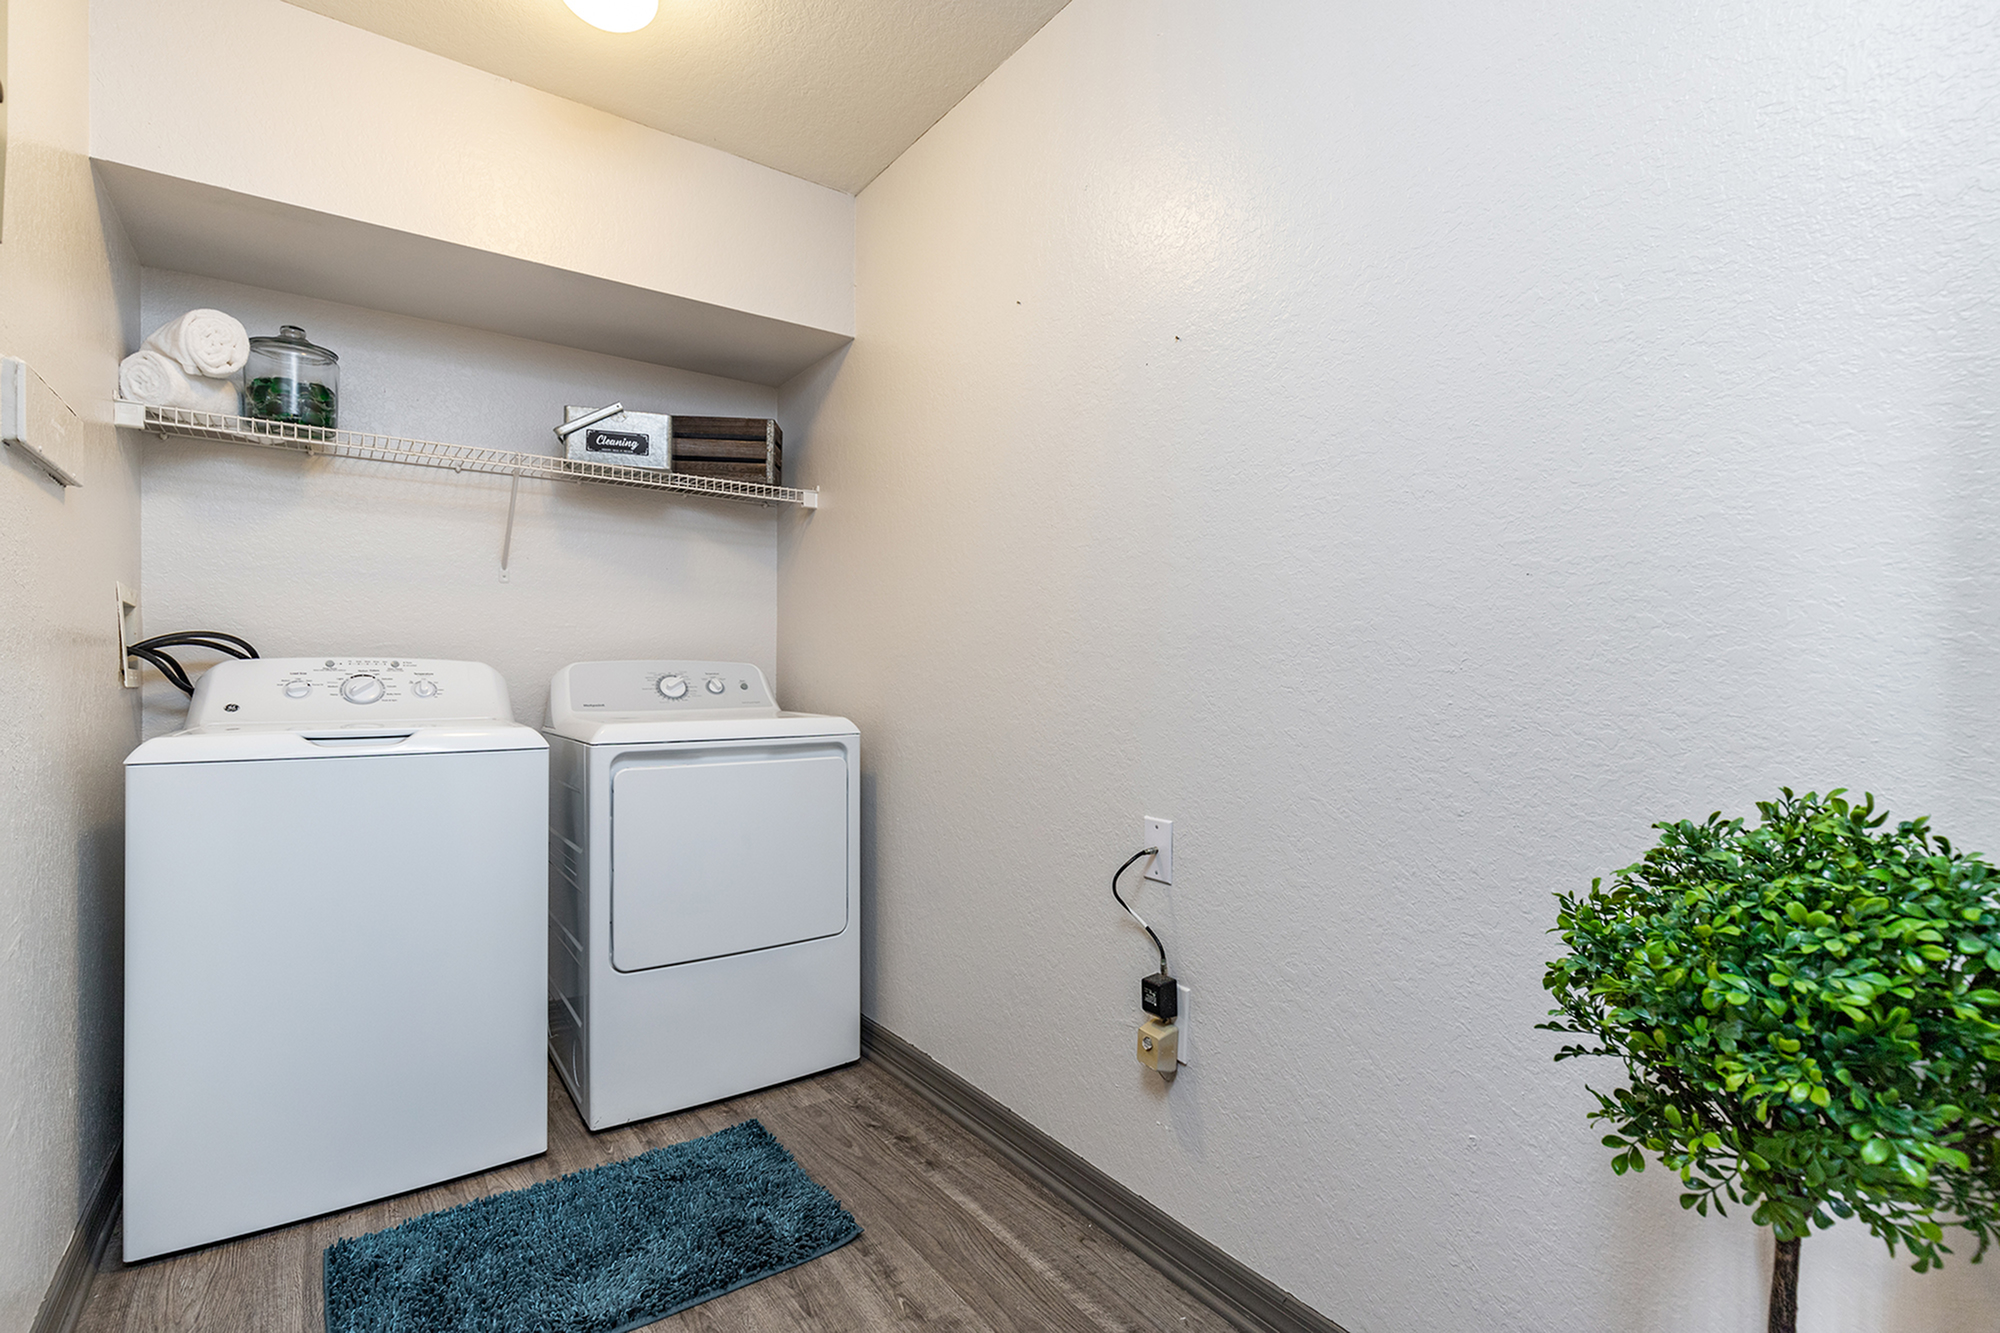 In-home Laundry  | Apartment Homes for rent in Tampa, FL | Station 42